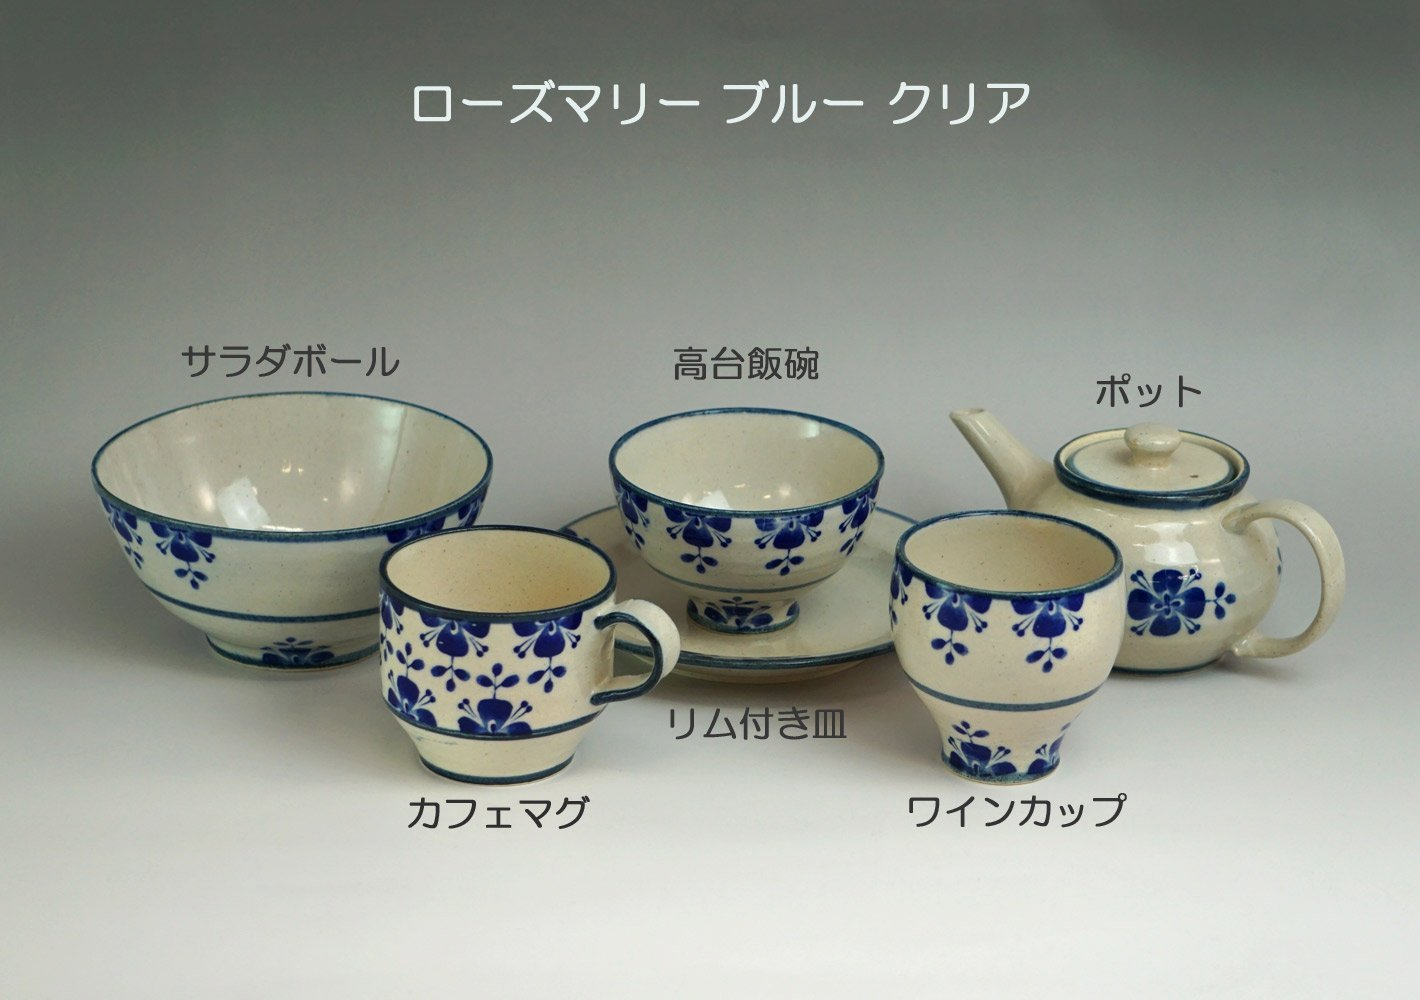 Mino ware Japanese Pottery Yunomi Chawan Tea/Wine Cup Rosemary Navy Blue made in Japan by T-Family (Image #4)